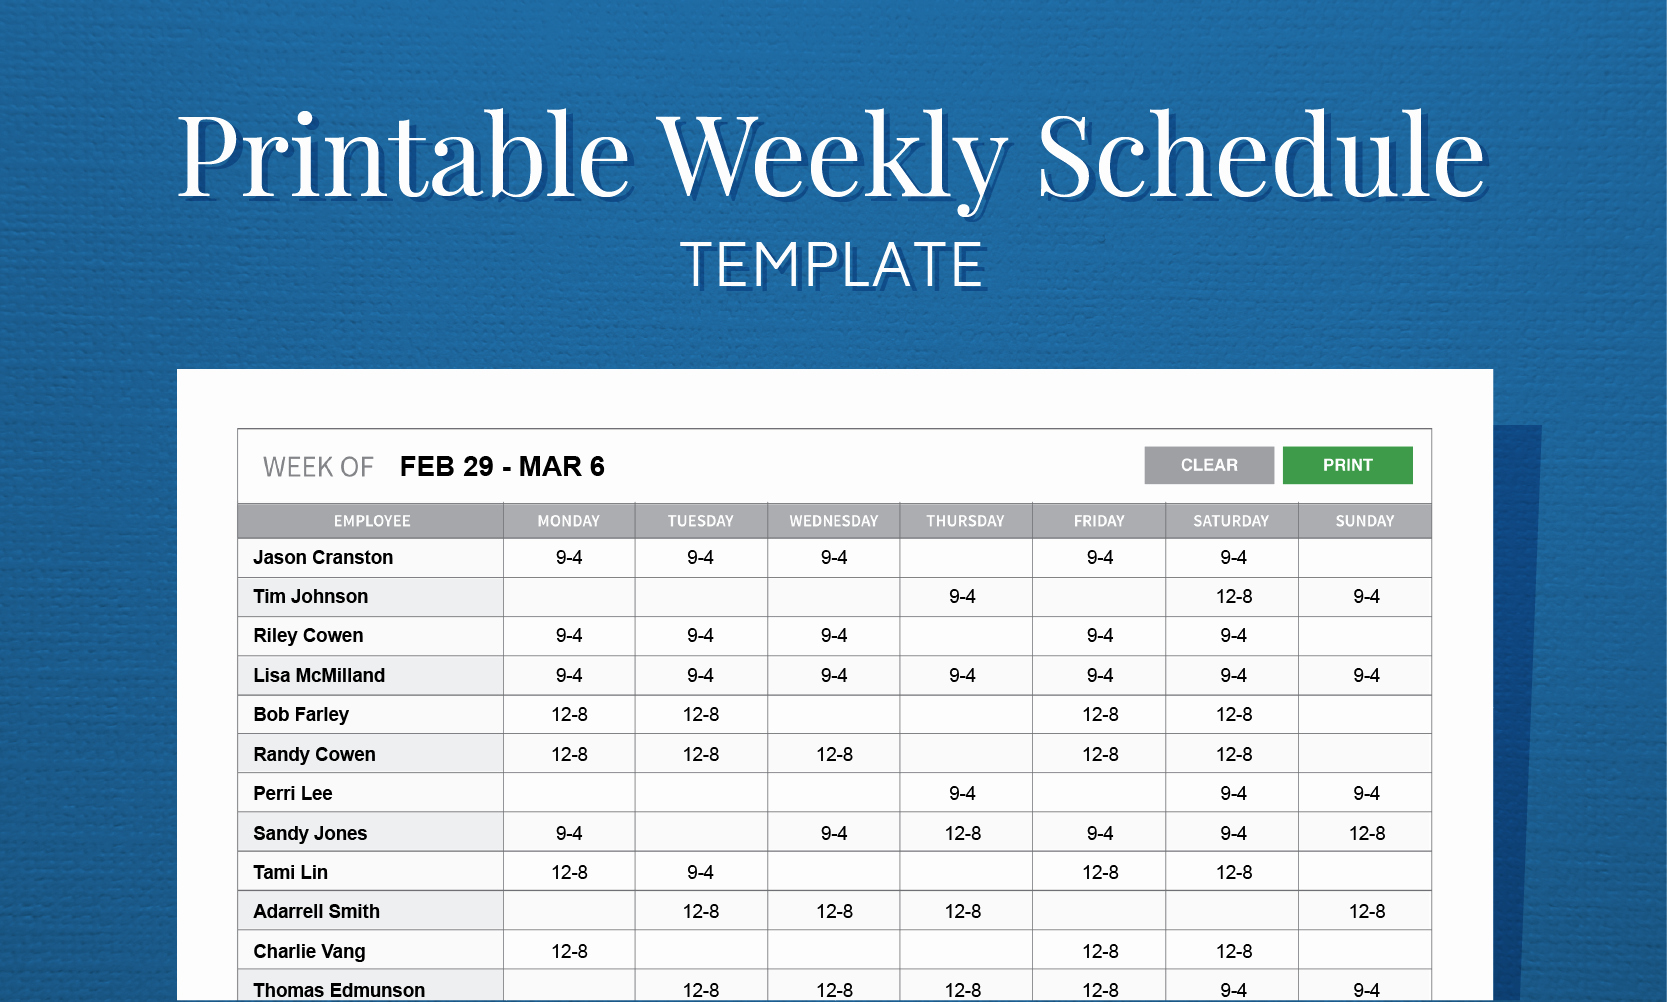 Monthly Work Schedule Template Excel New Free Printable Work Schedule Template for Employee